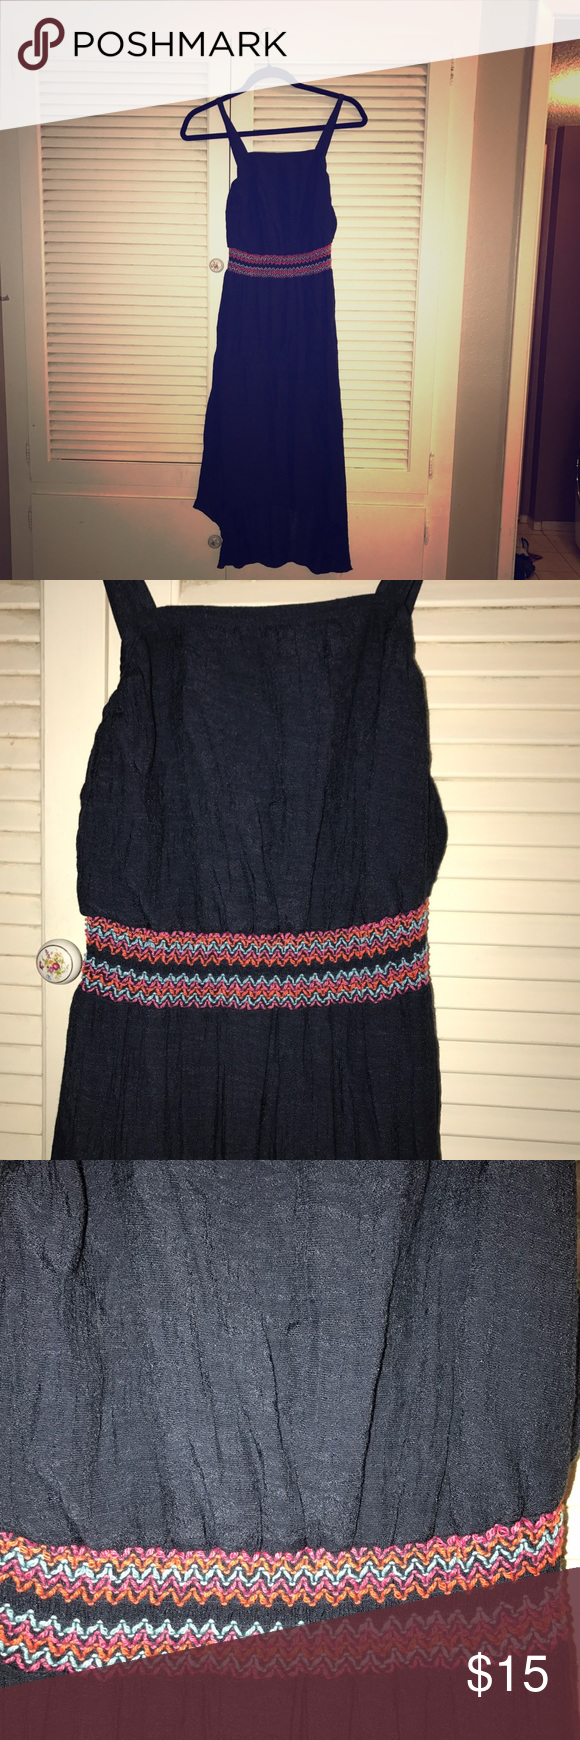 Hot pink and orange dress  Girls summer dress Dark blue with colorful waist Great condition